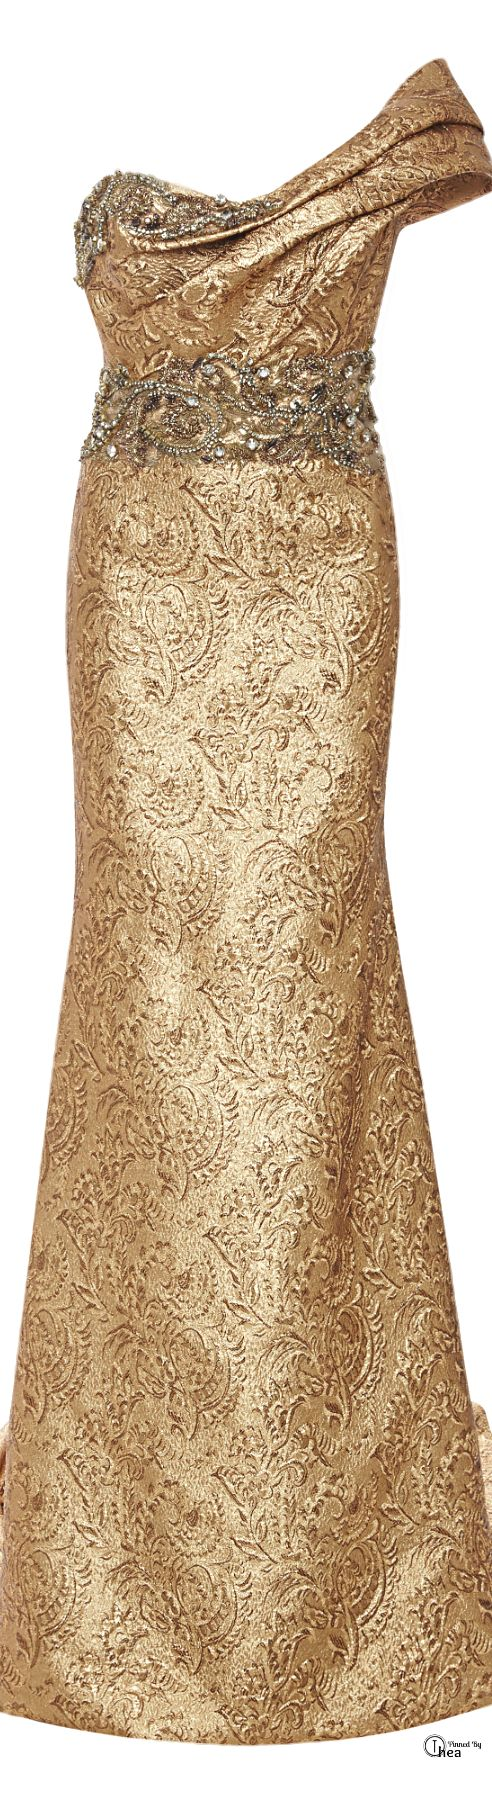 Gold Glamour Gowns ..Marchesa ● Fall 2014, Metallic Brocade Gown